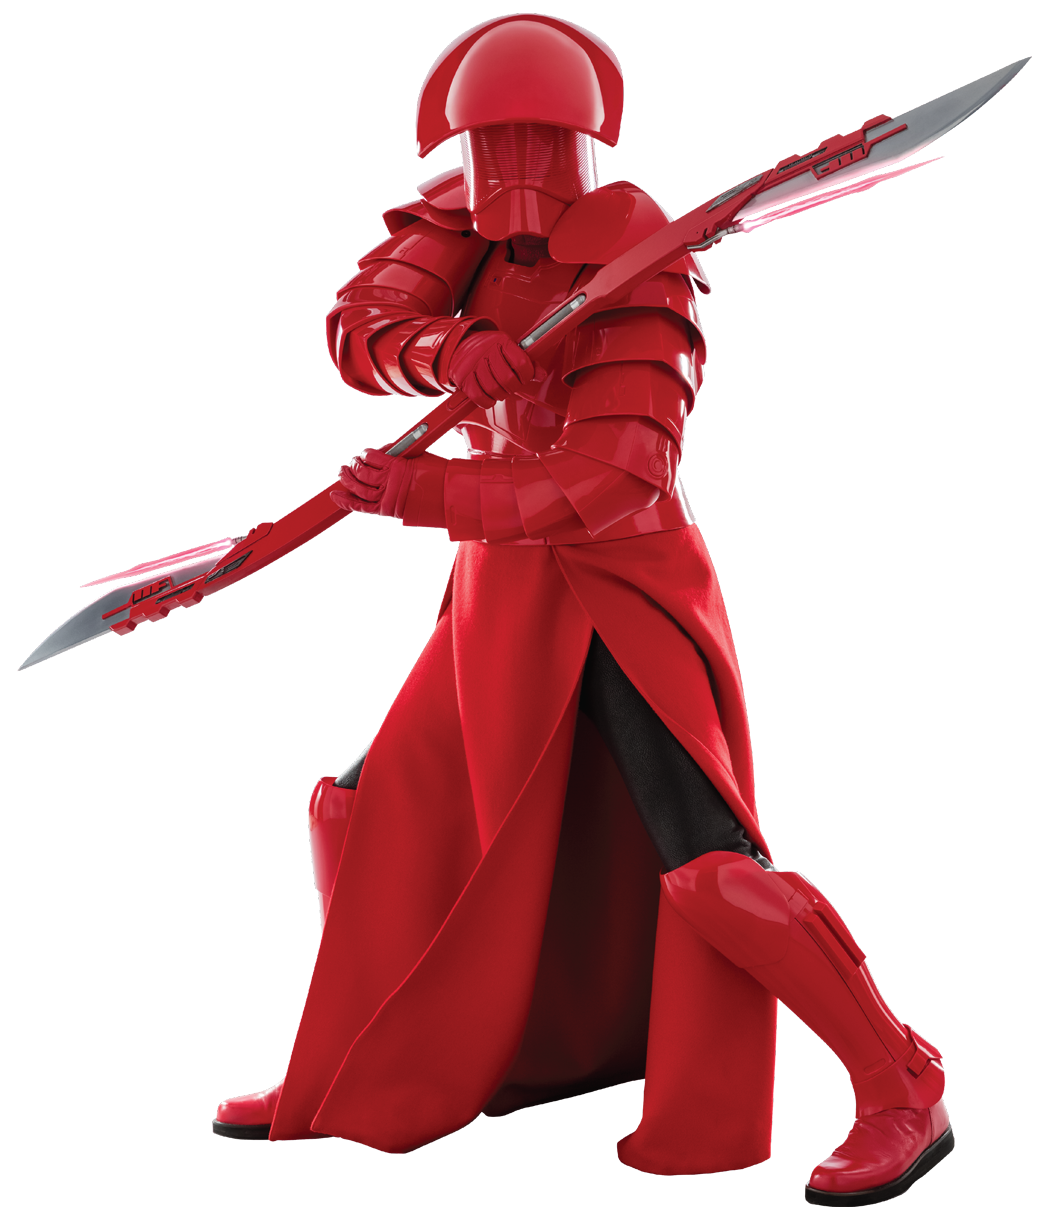 Praetorian Guard Double-Headed Vibro-Arbir Blade